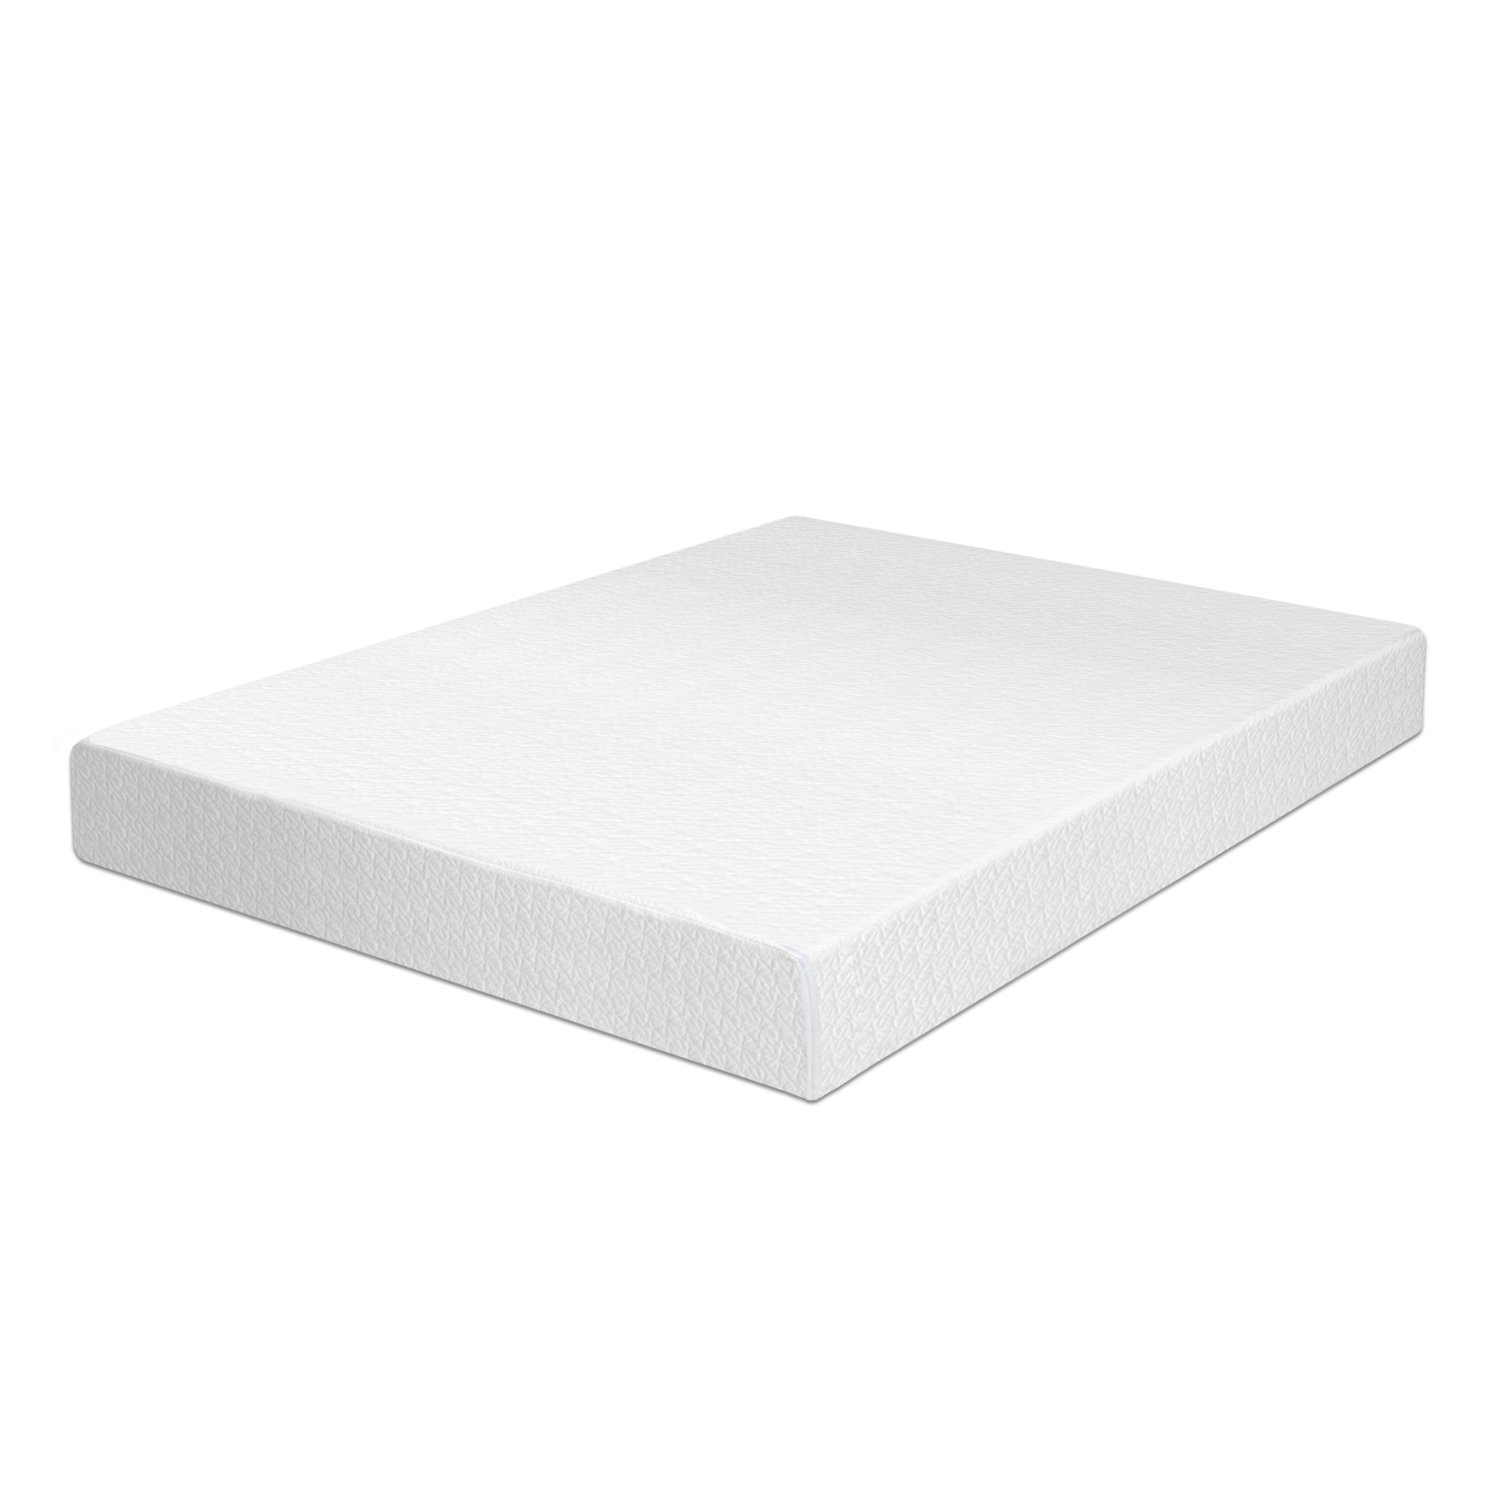 Best price mattress 8 inch memory foam mattress twin for Best foam mattress